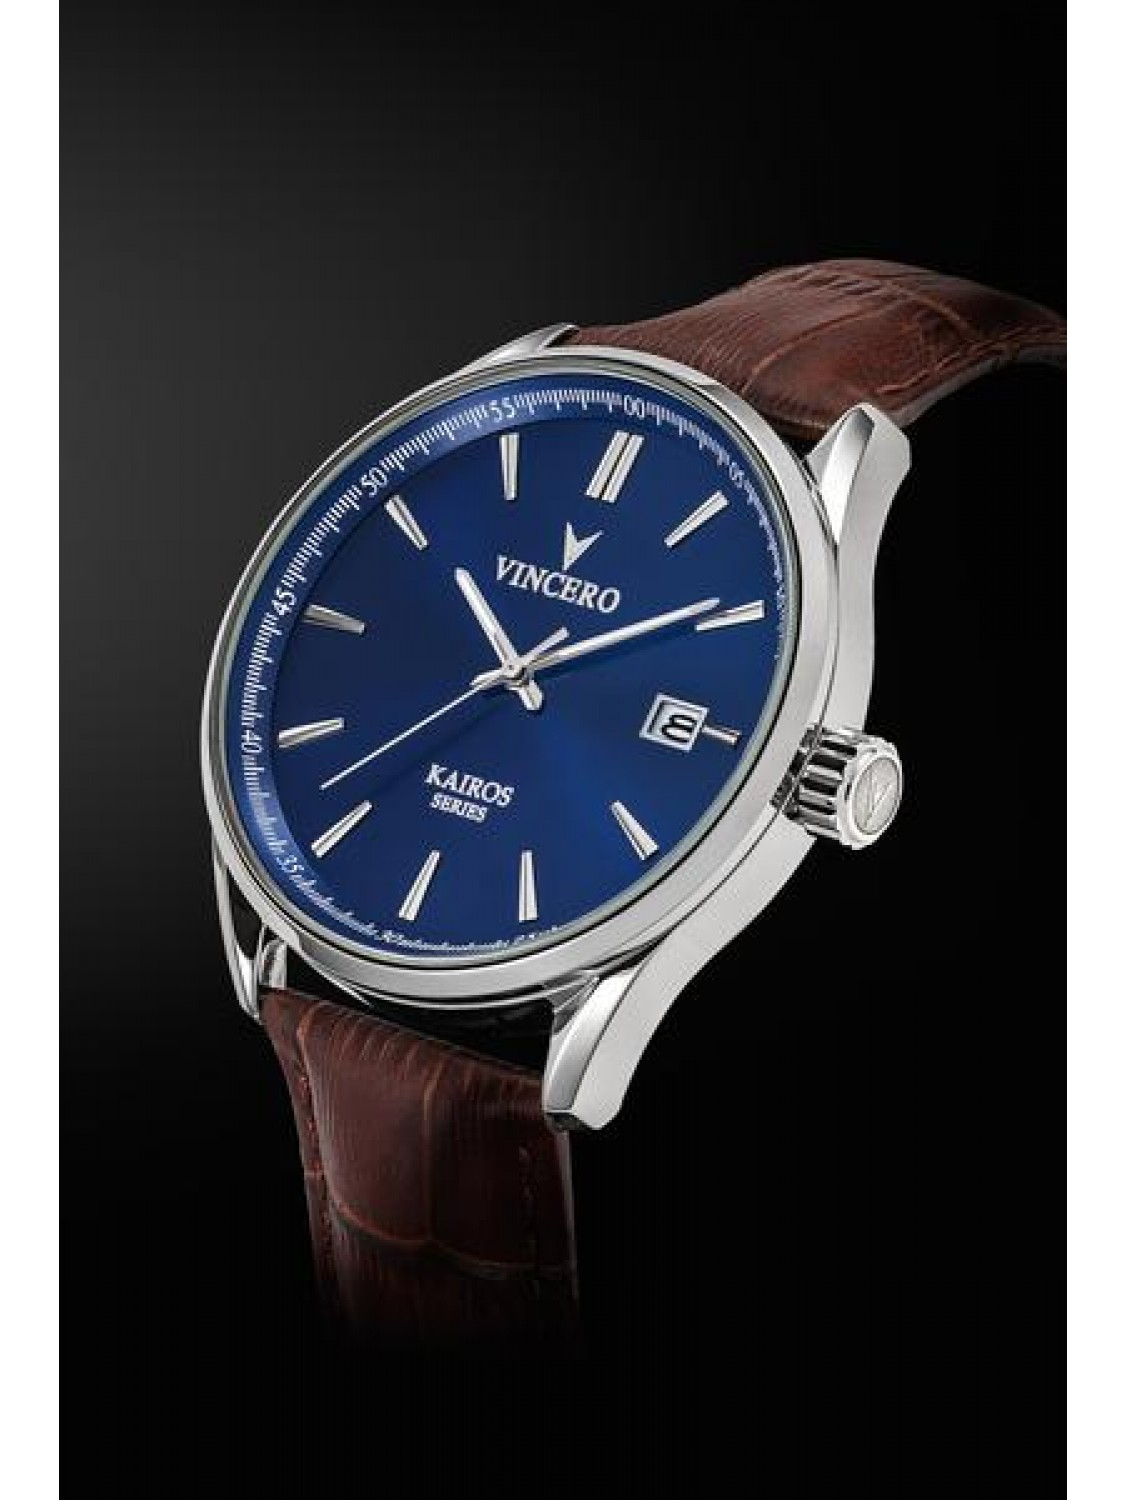 Vincero Kairos Blue/Brown-01